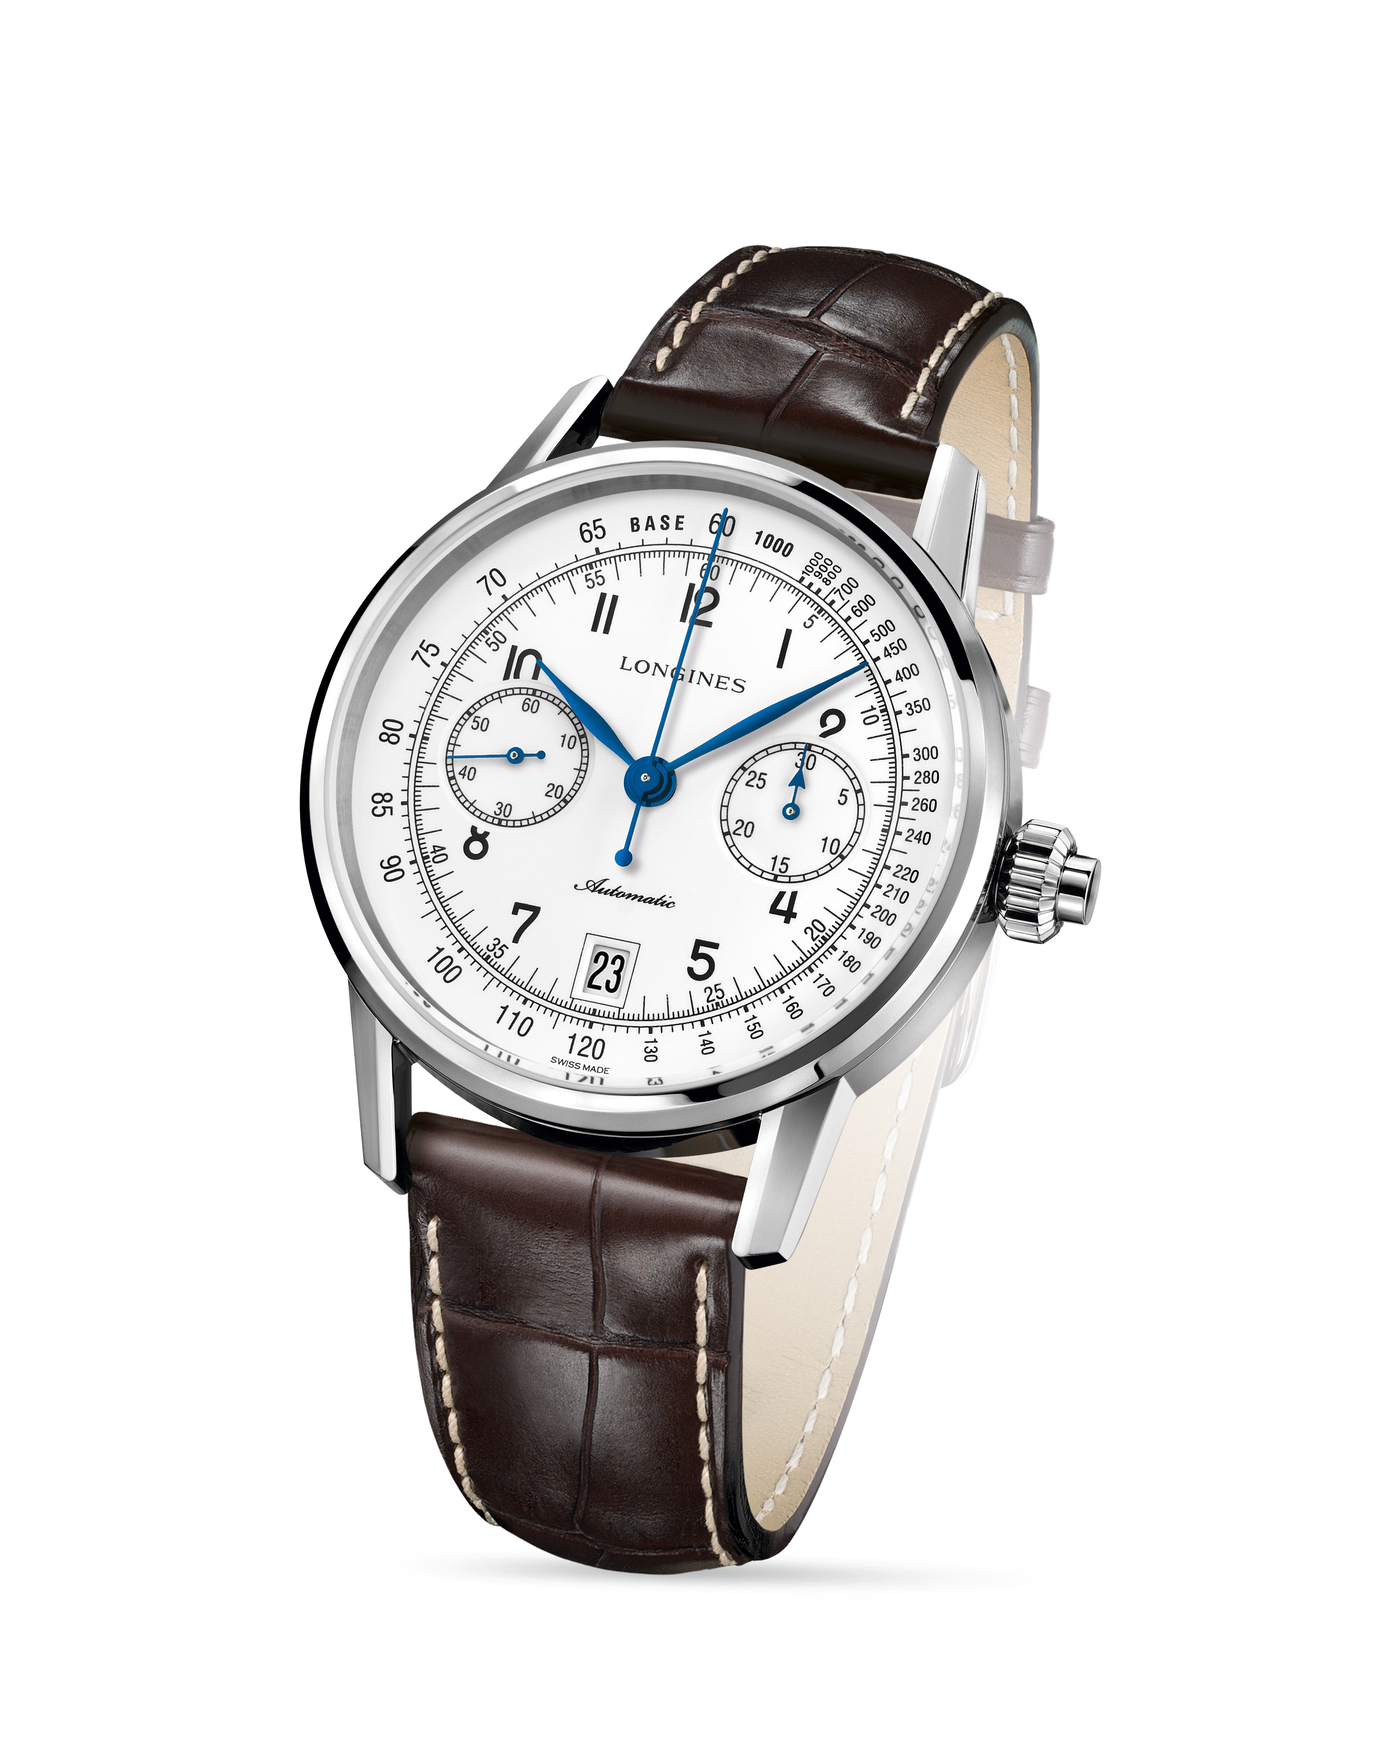 Longines The Longines Column-Wheel Single Push-Piece Chronograph  Watch 2